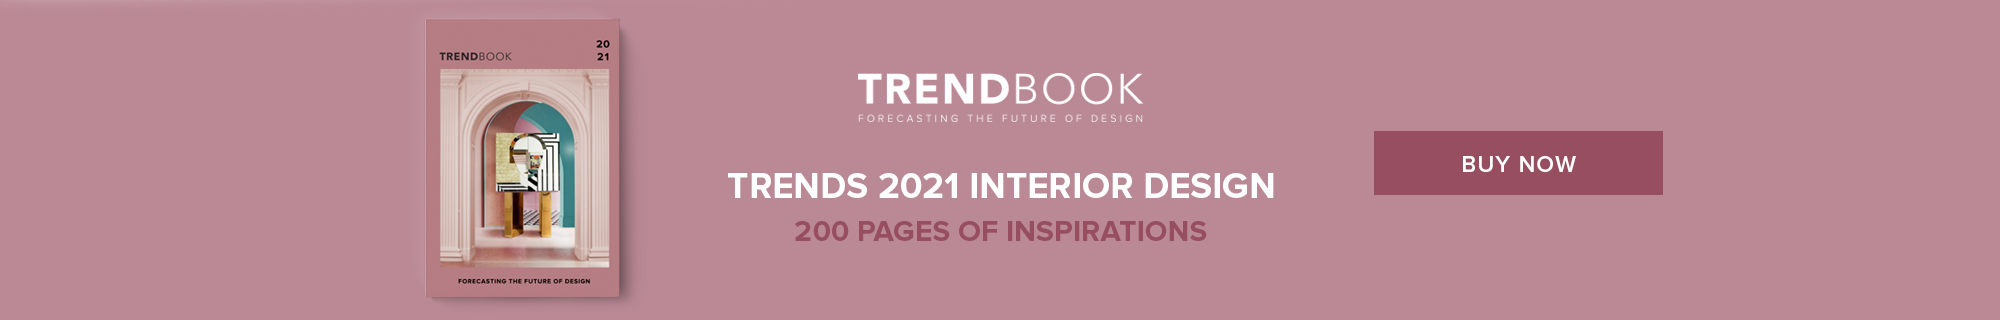 New Trend Book Forecast 2021